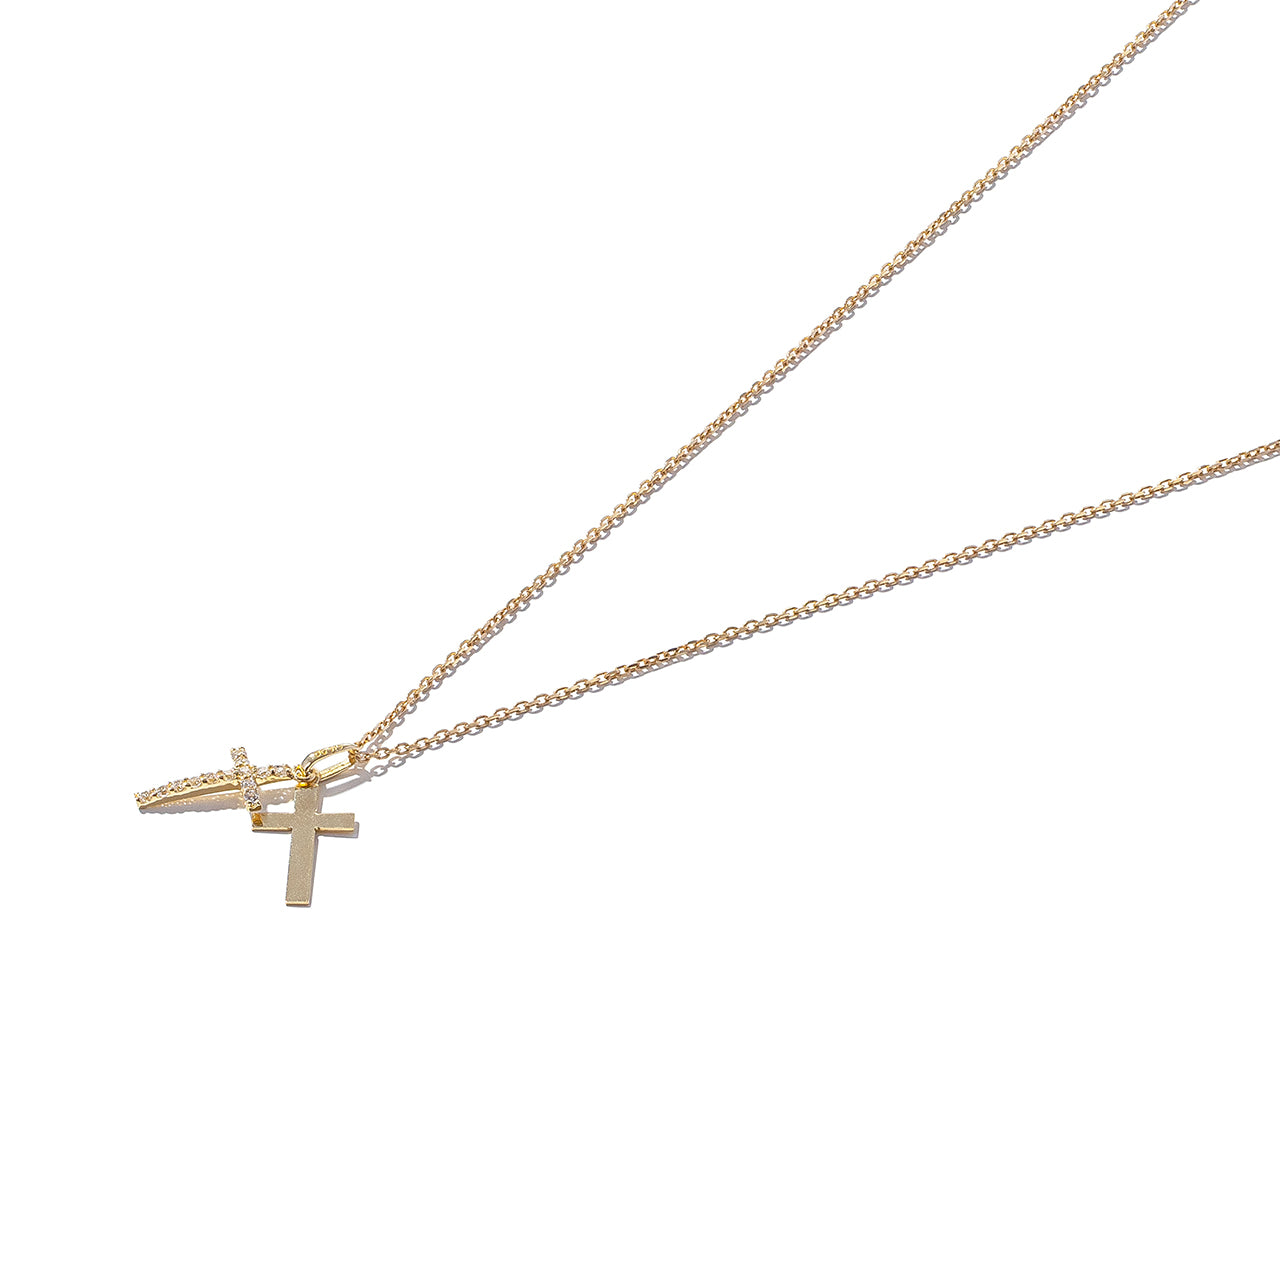 Solid 9ct Gold Double Crossed Pendant